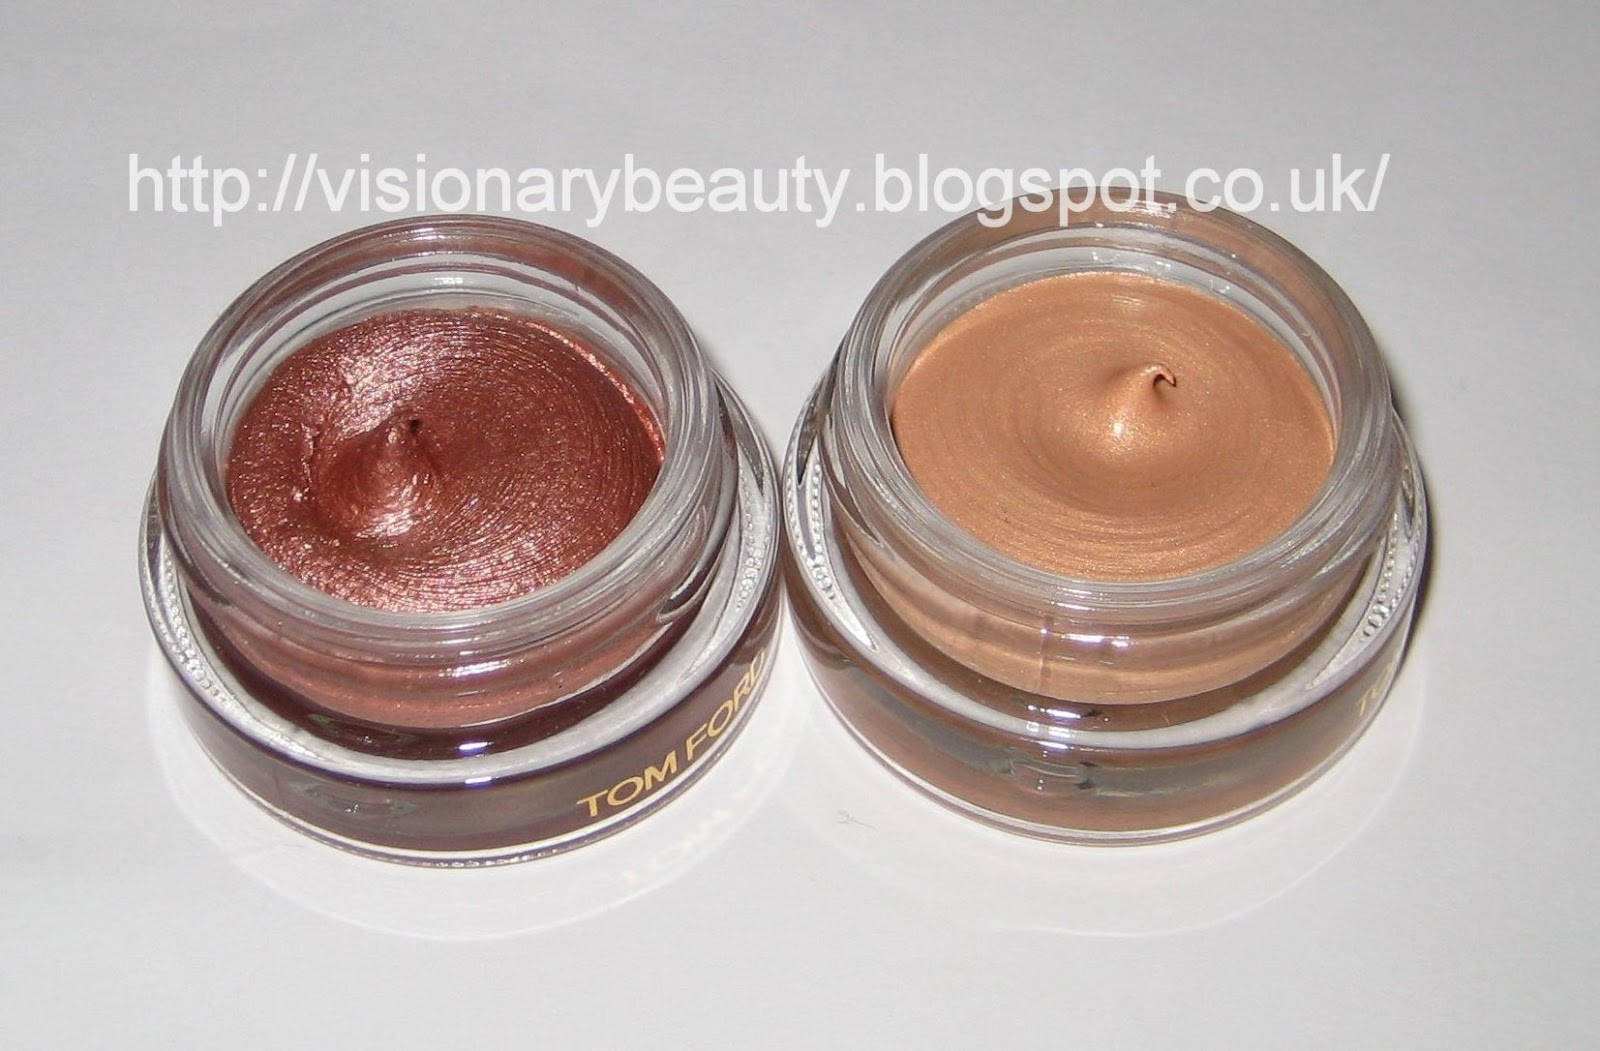 Visionary Beauty  Tom Ford Summer 2013  Cream Colour for Eyes in